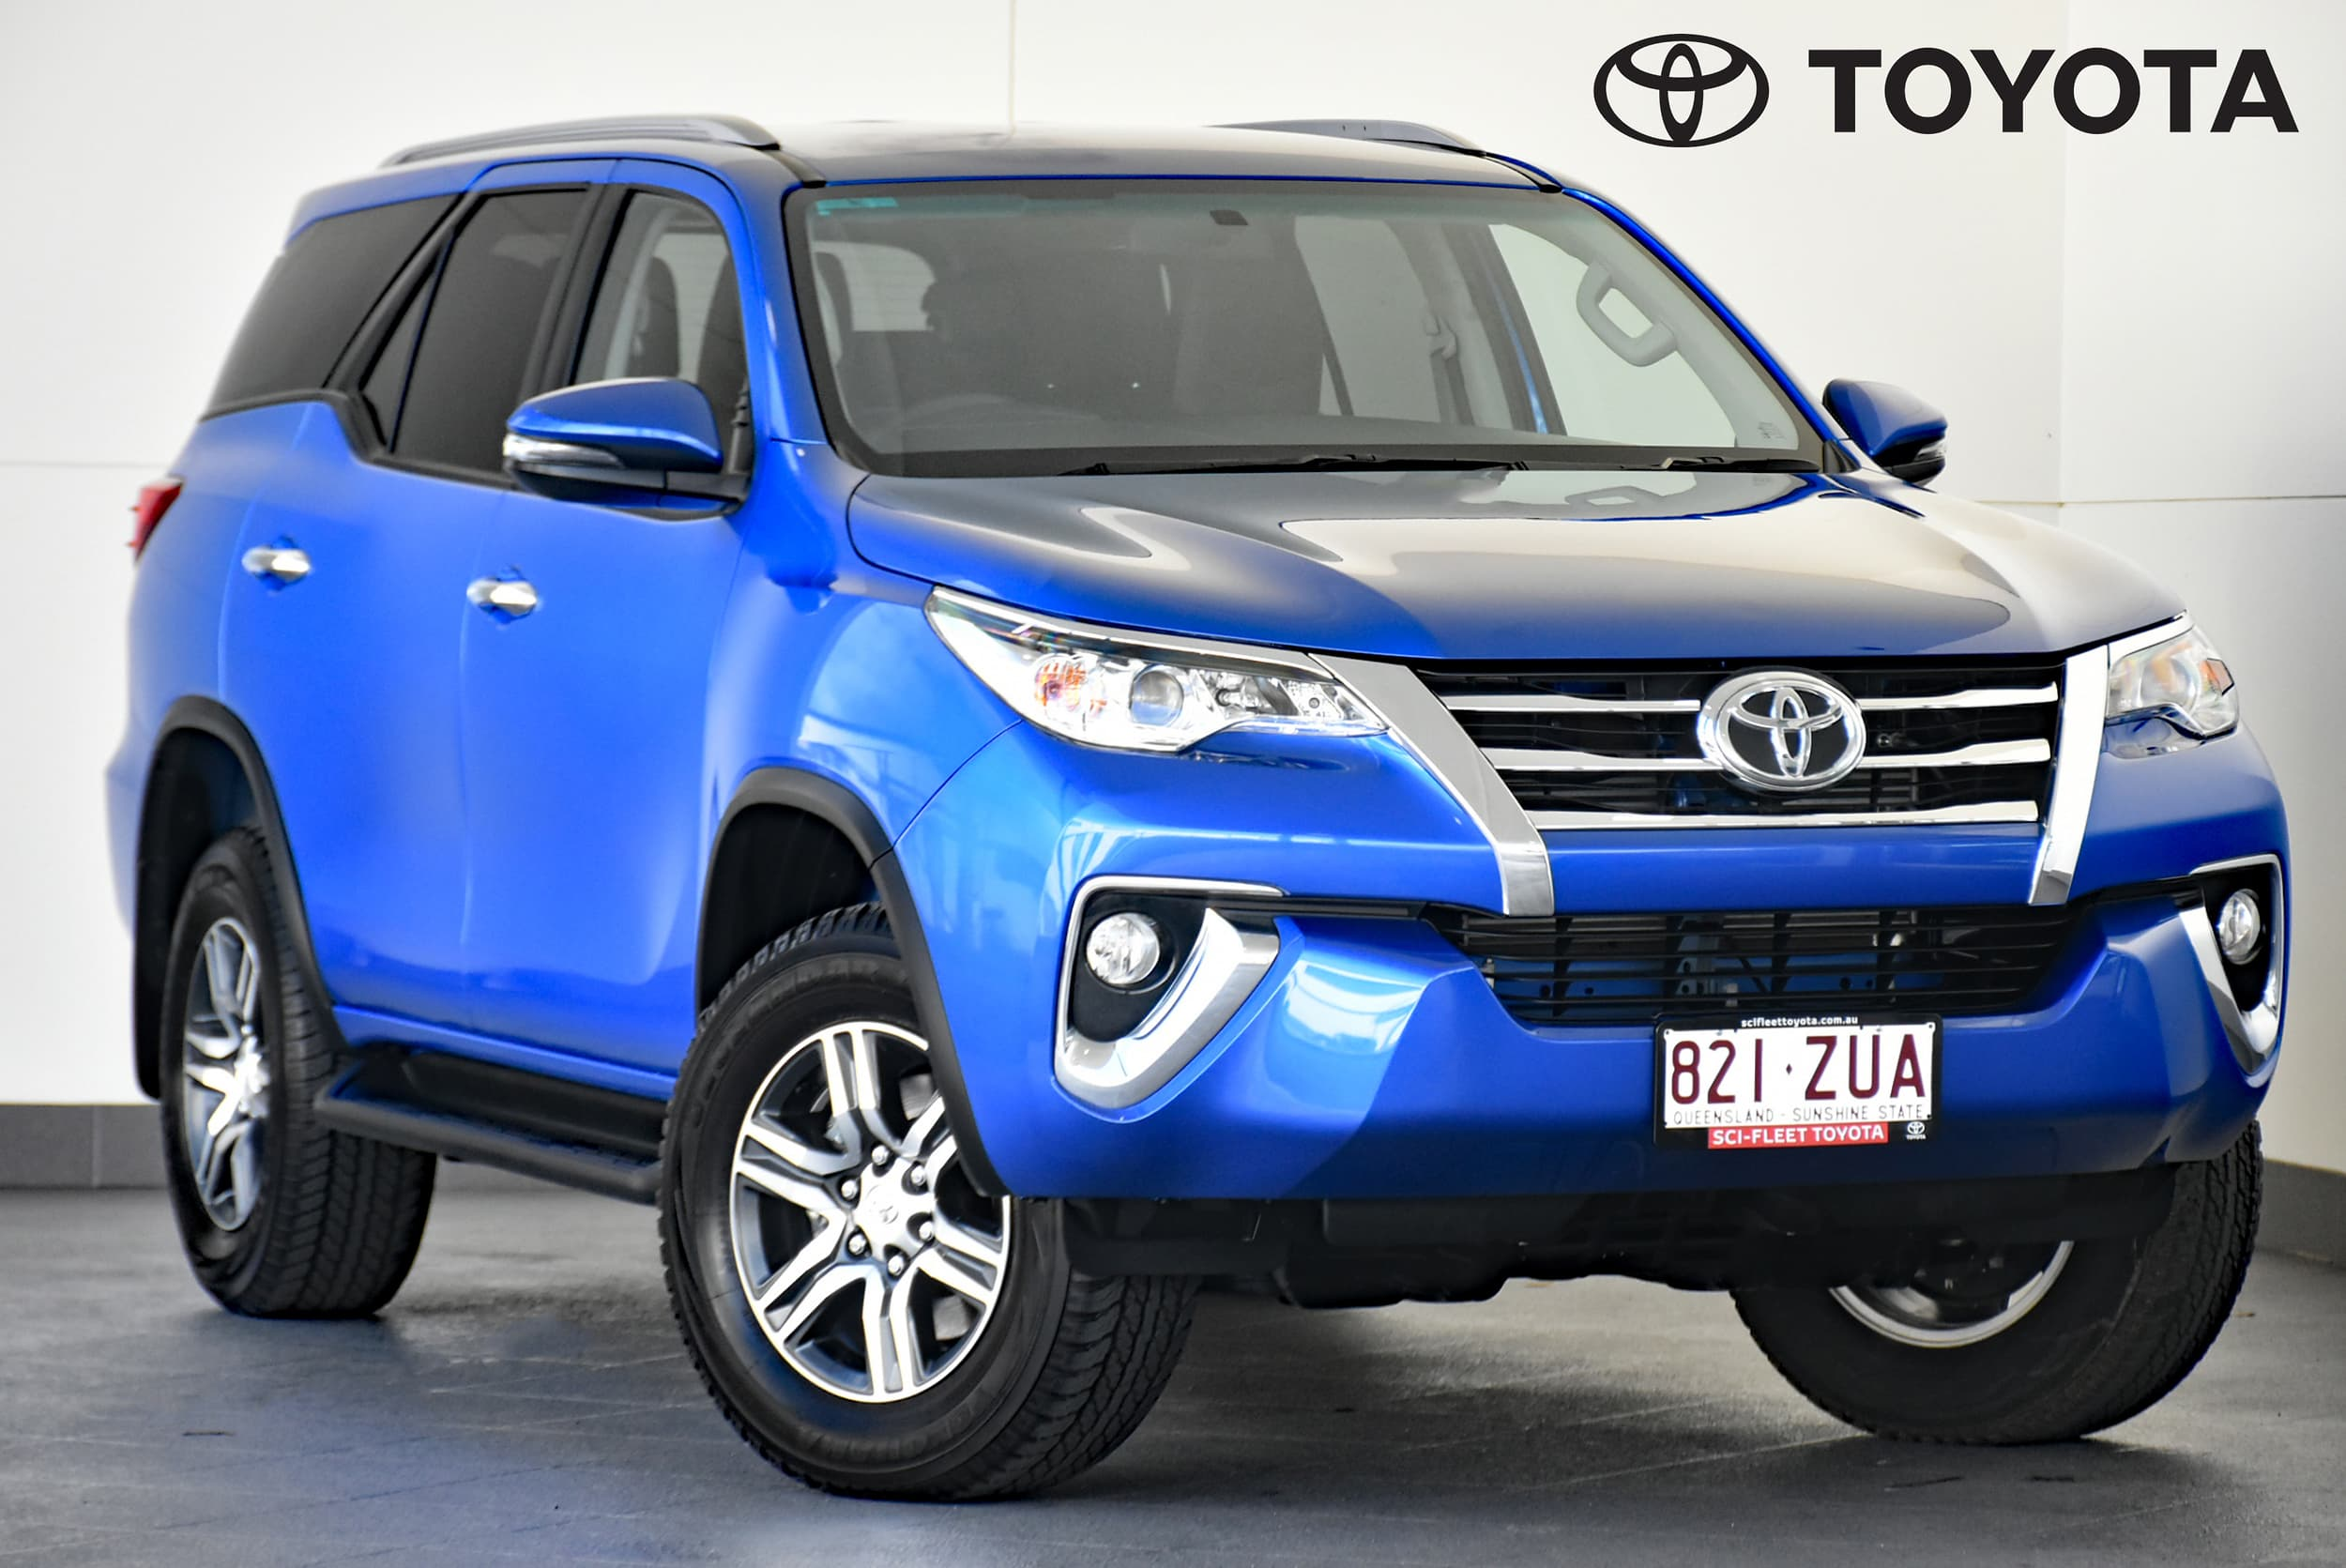 2019 Toyota Fortuner GXL Auto 4x4 - image 1